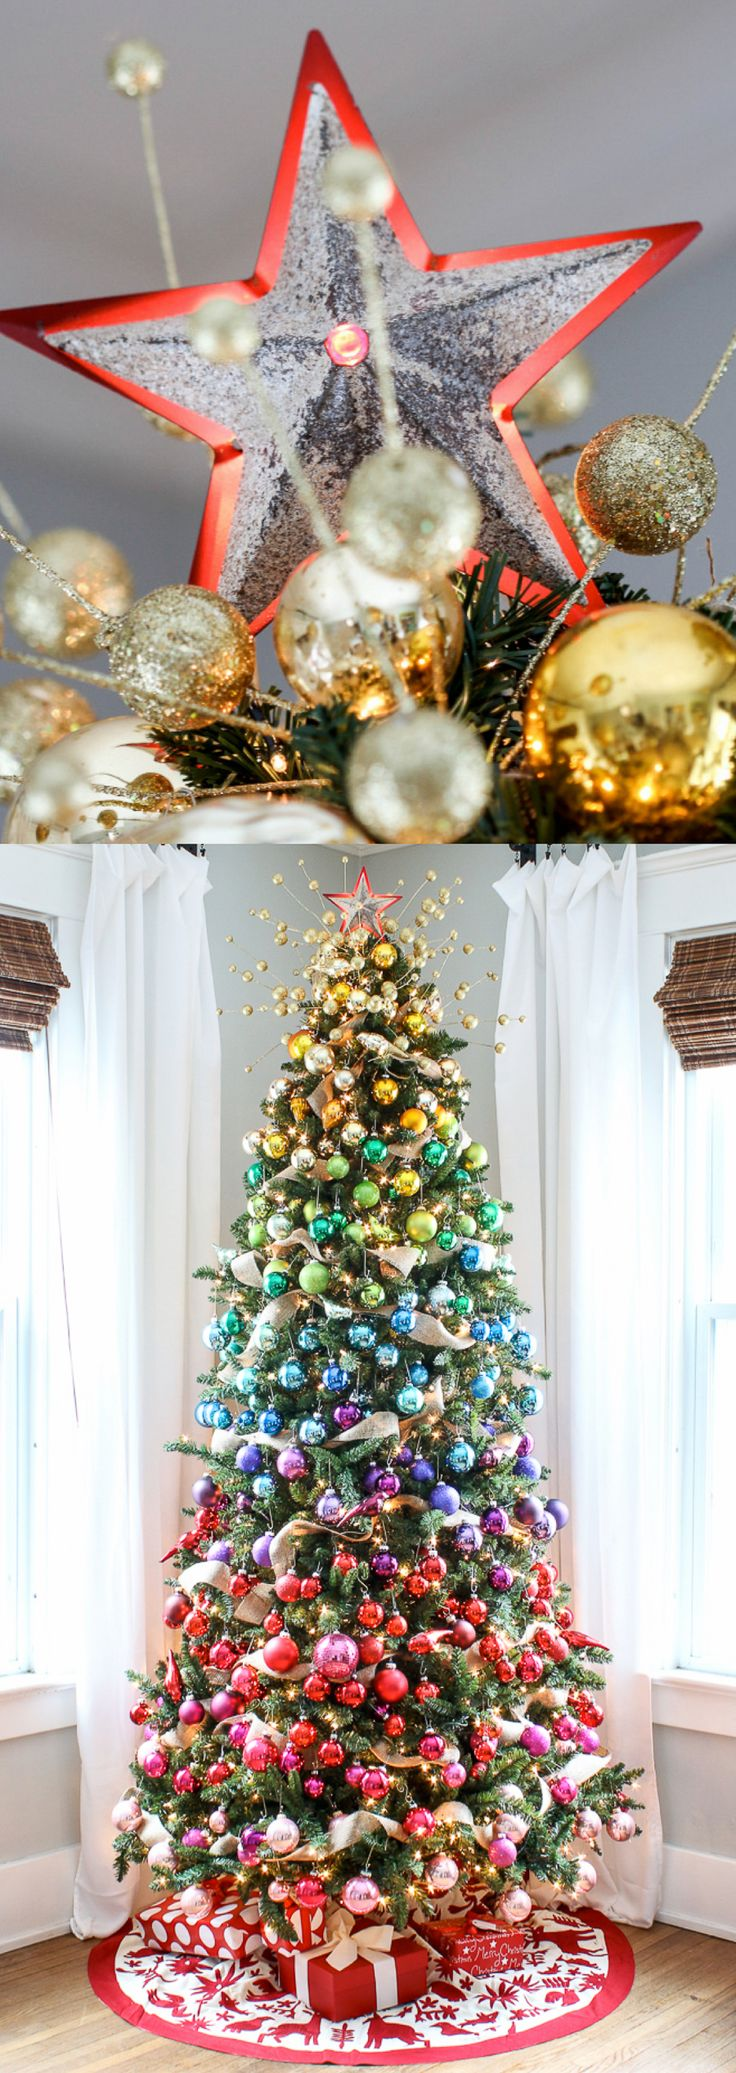 best 25+ unique christmas decorations ideas on pinterest | diy